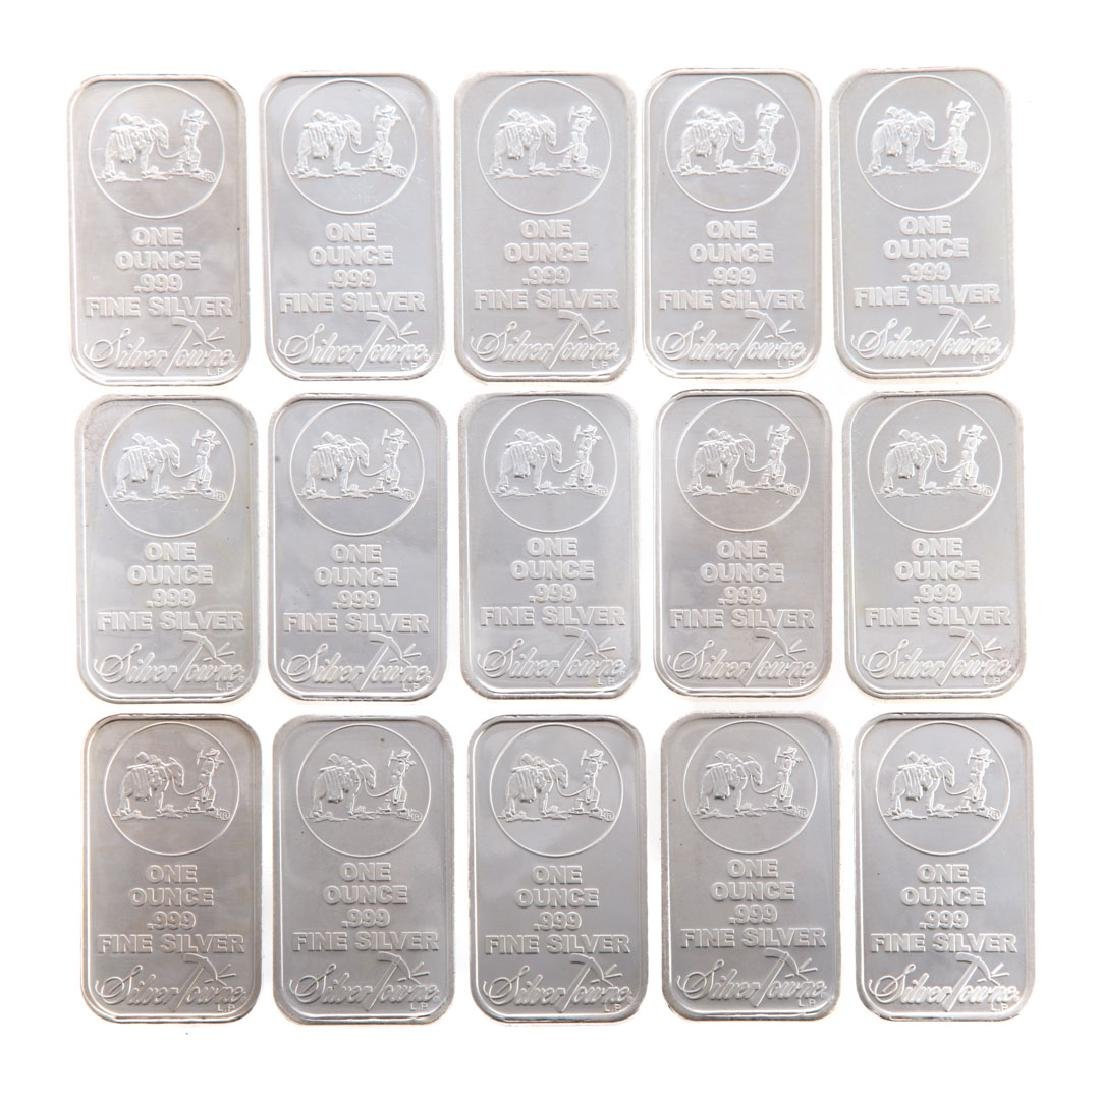 [US] Fifteen 1-Oz .999 Silver Bars by Silvertowne